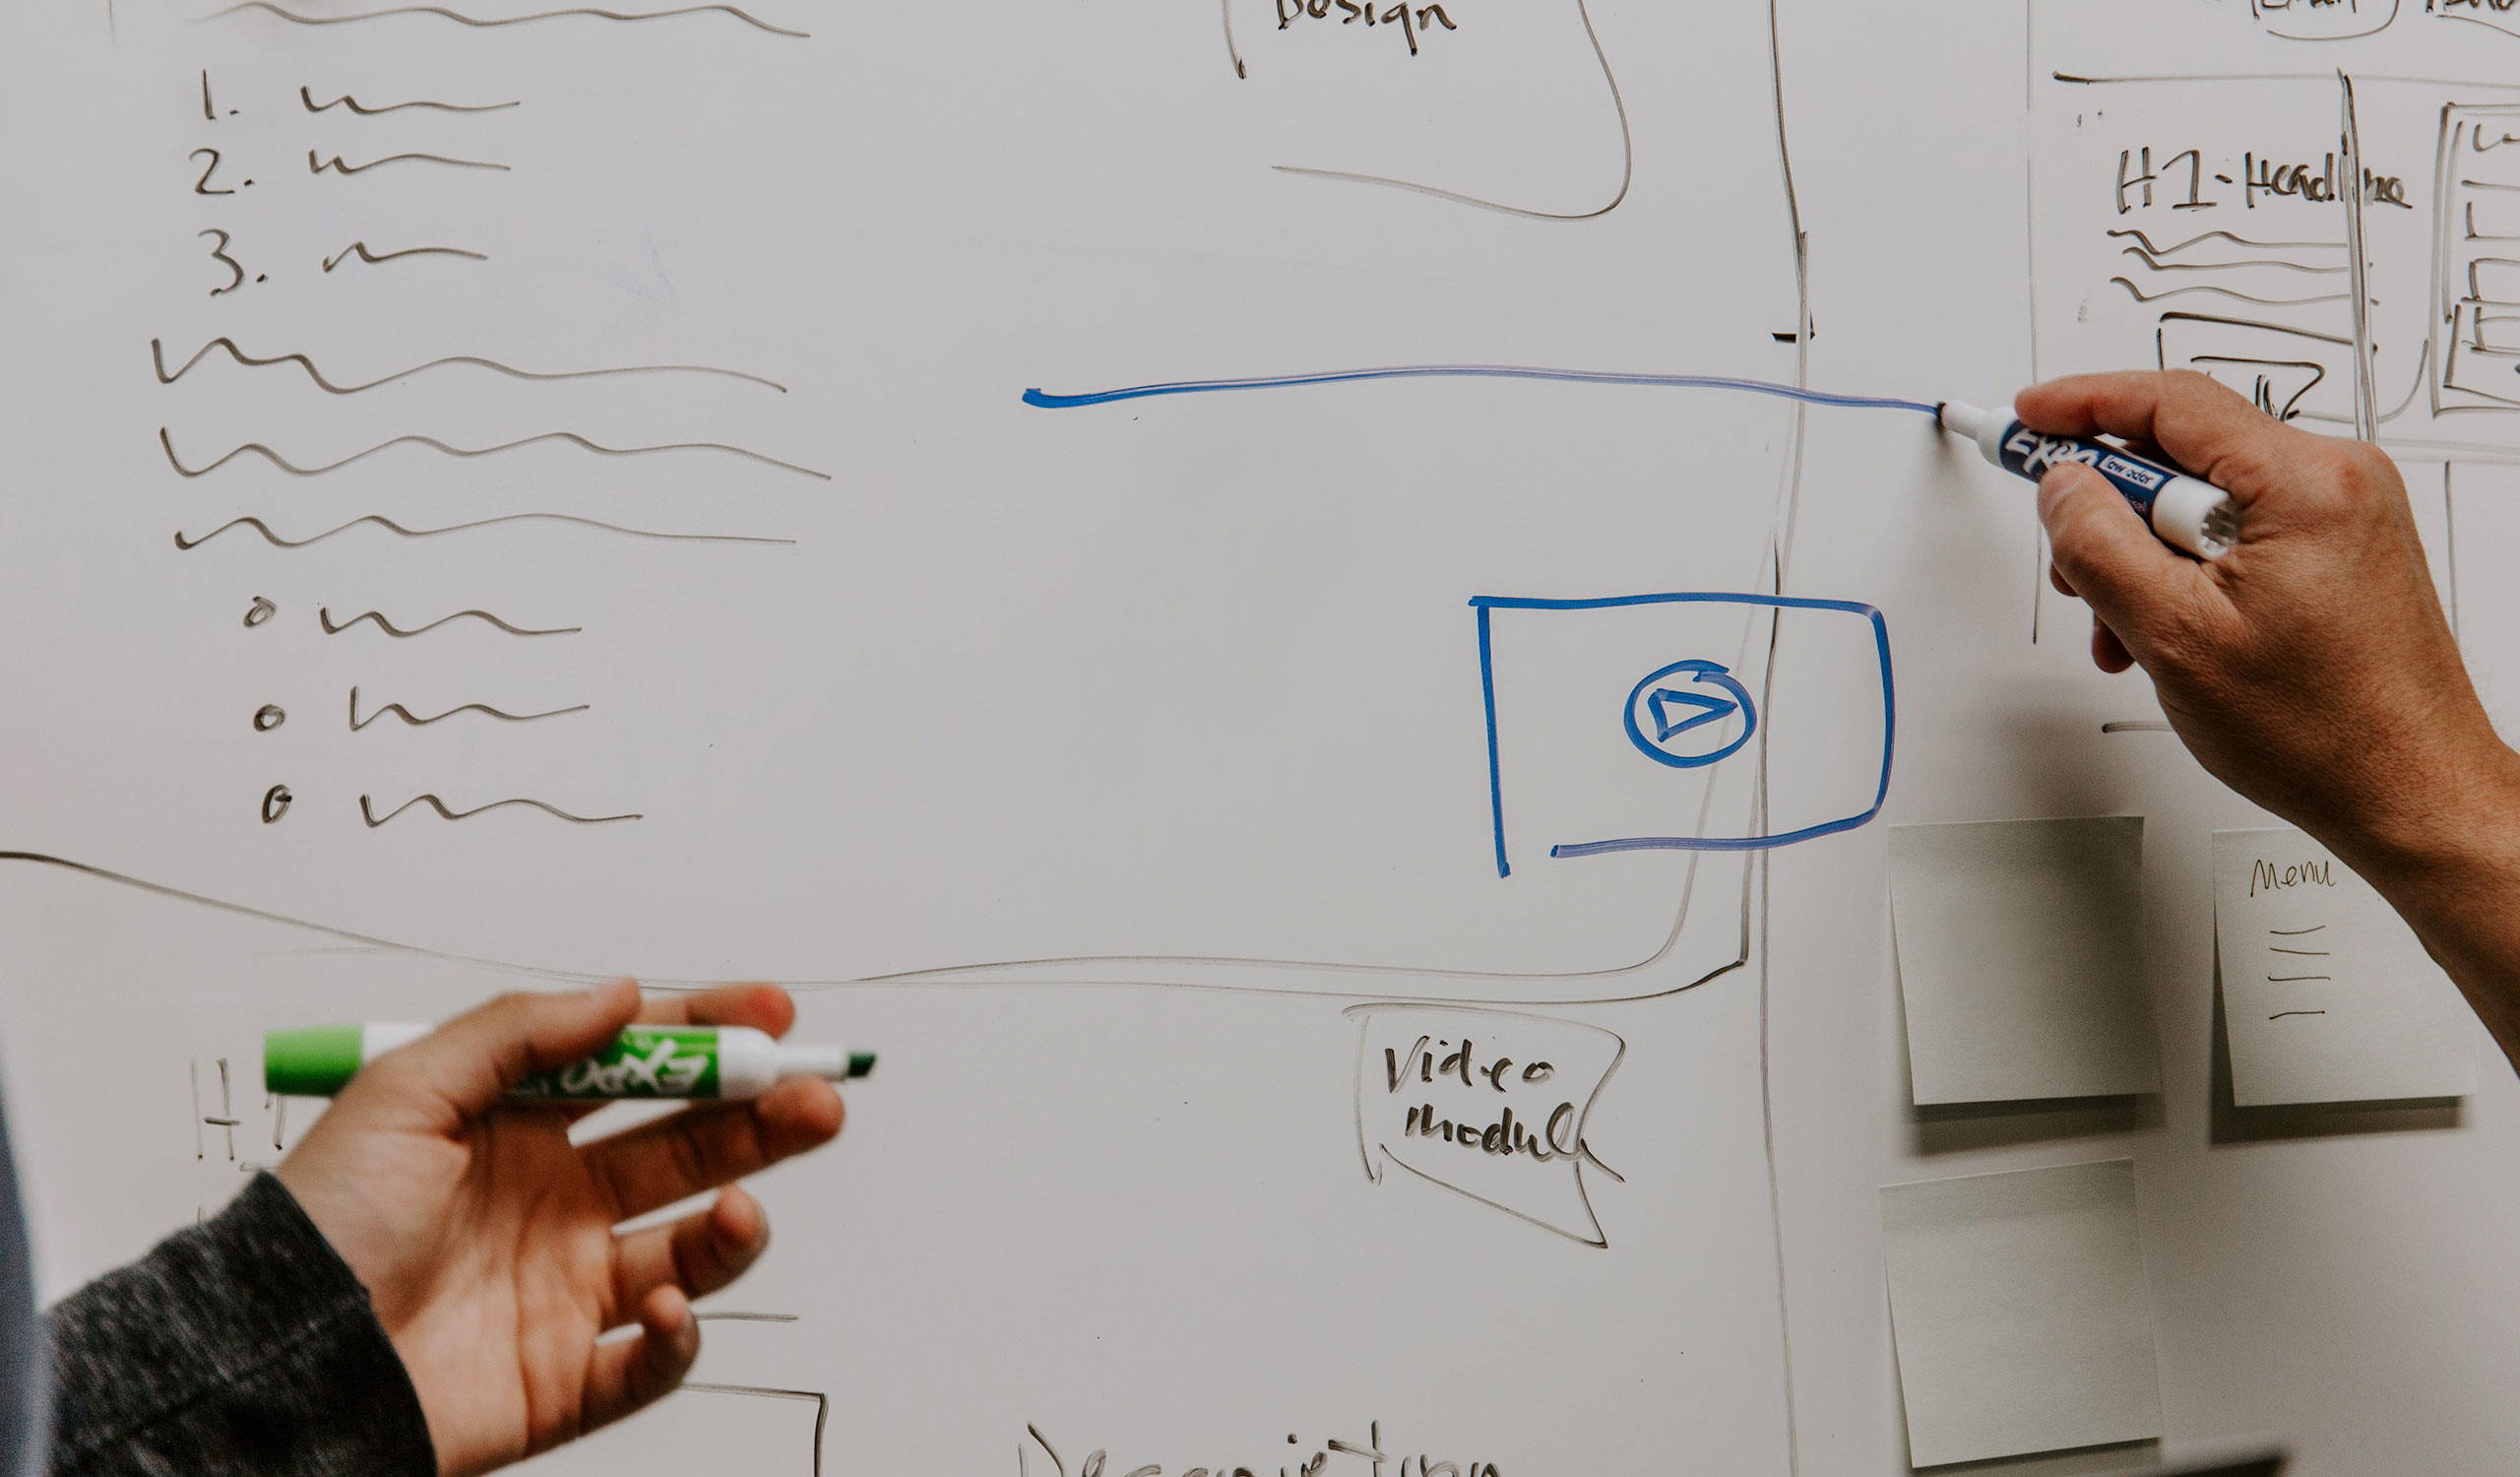 Photo of a design sketch on a whiteboard